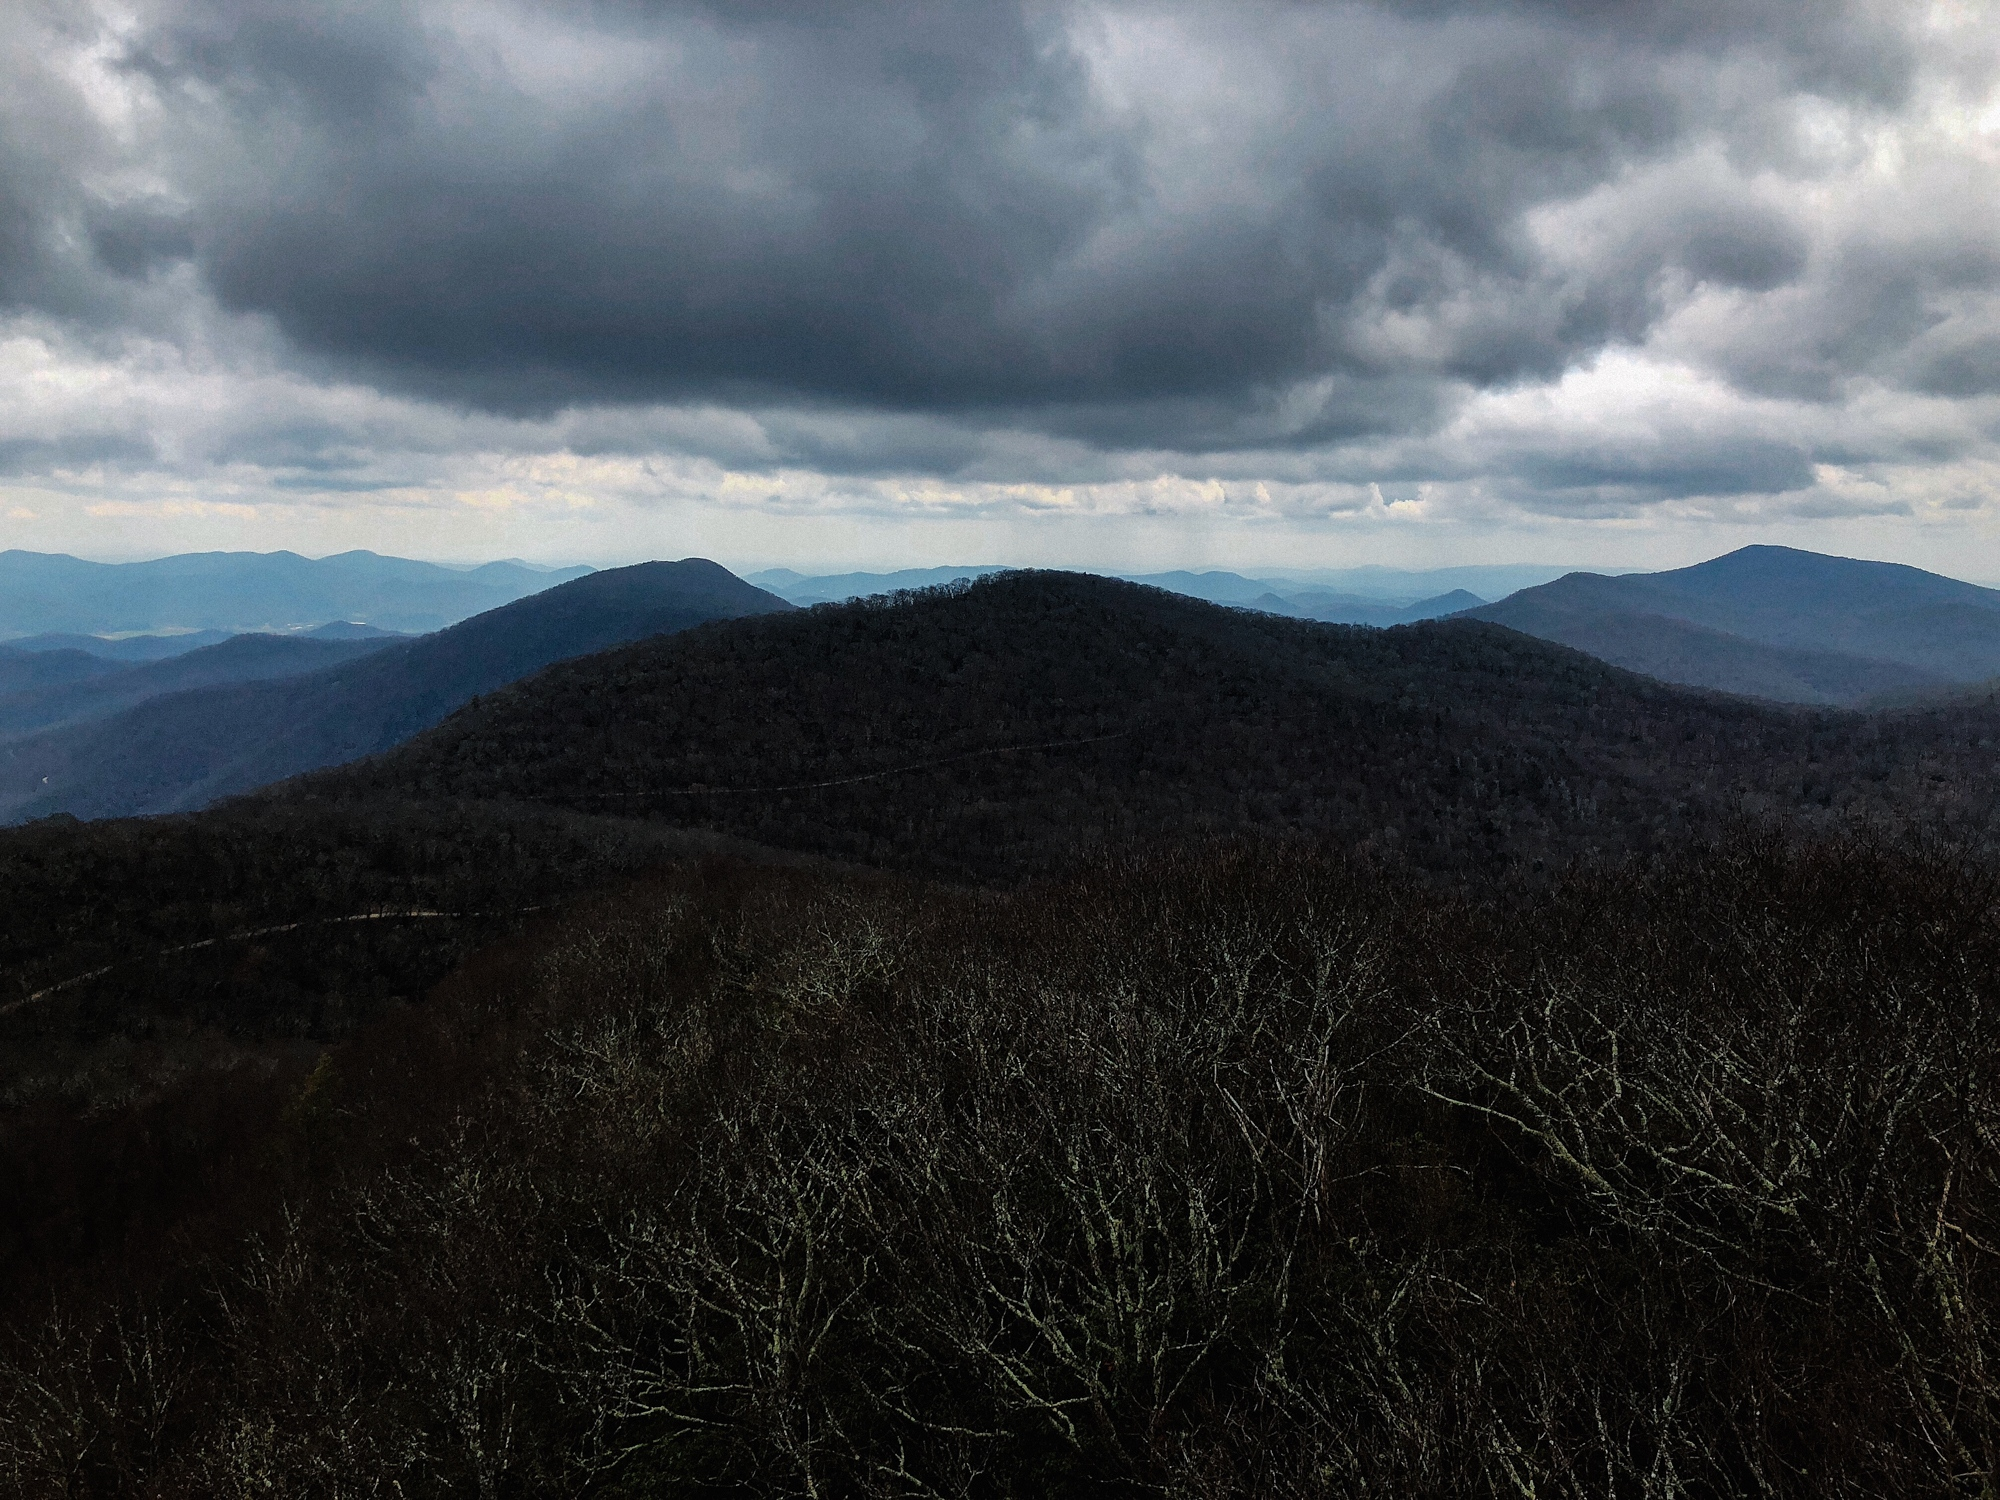 From the Albert Mountain fire tower, North Carolina, Appalachian Trail 2018